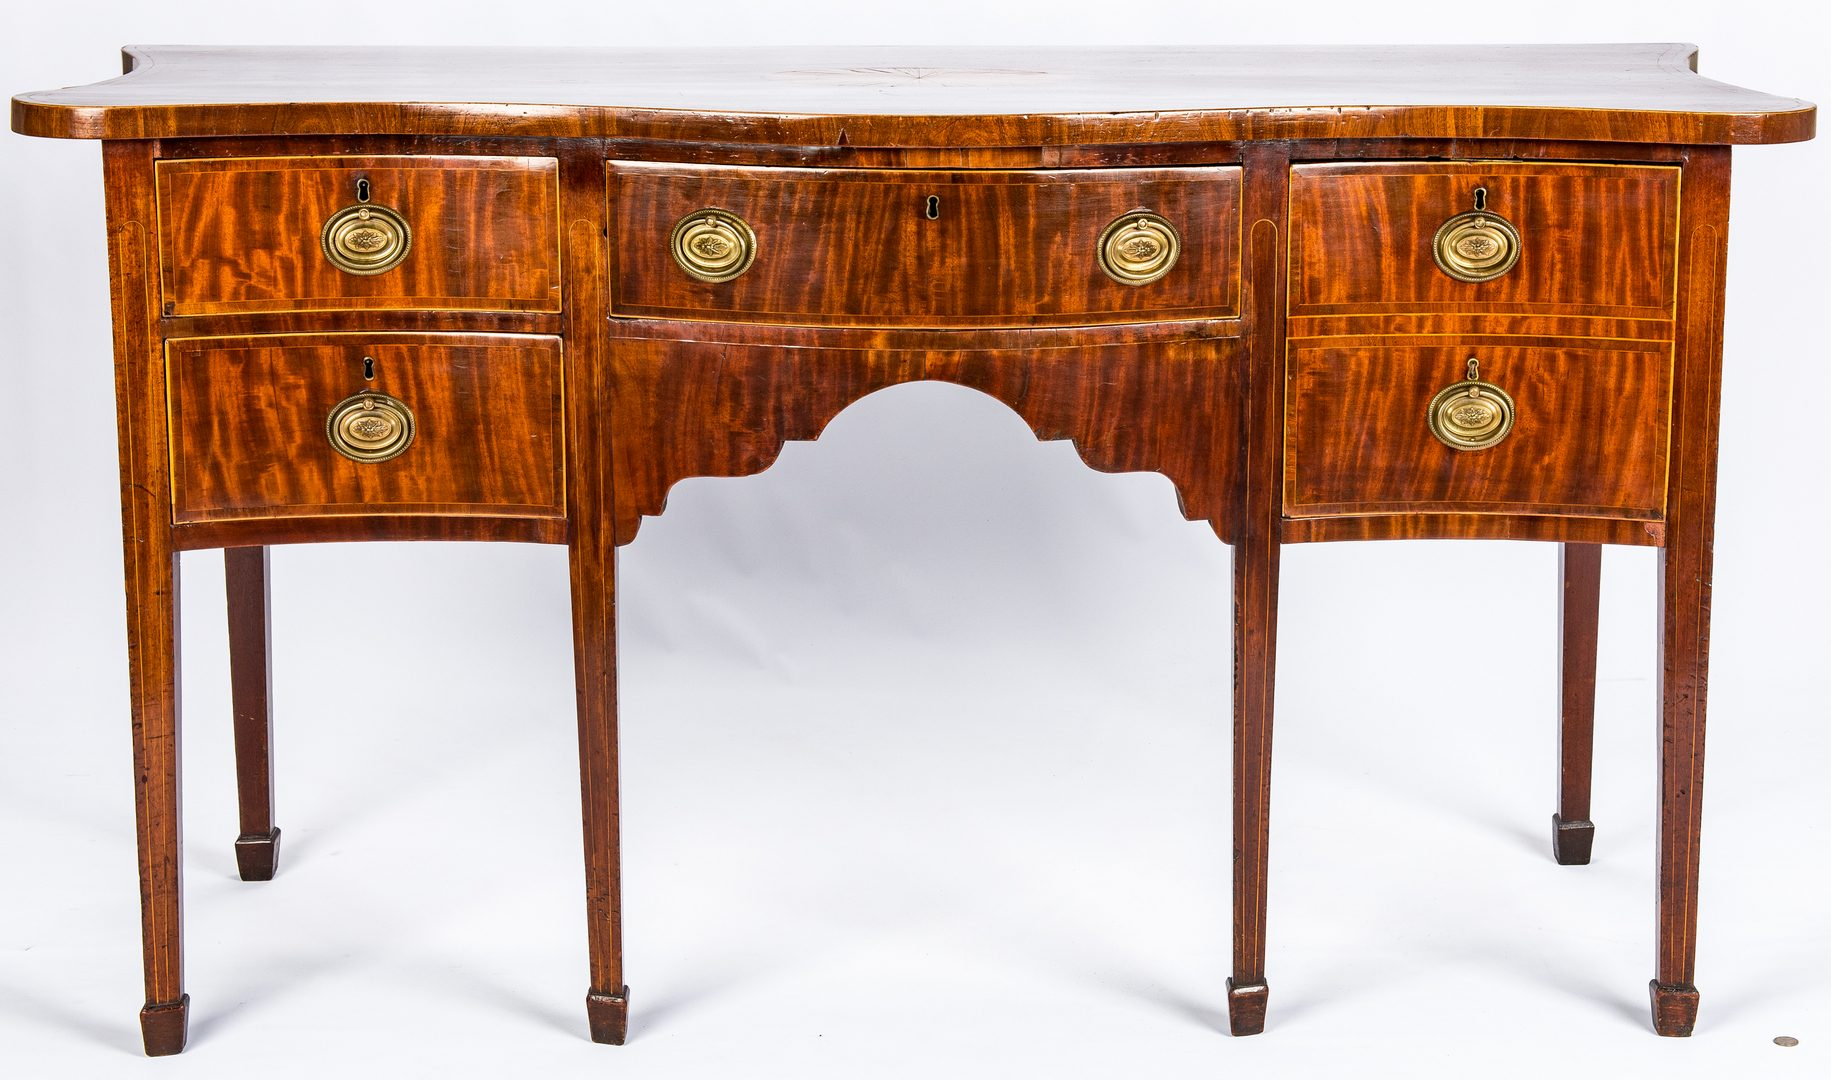 Lot 436: George III Style Inlaid Sideboard